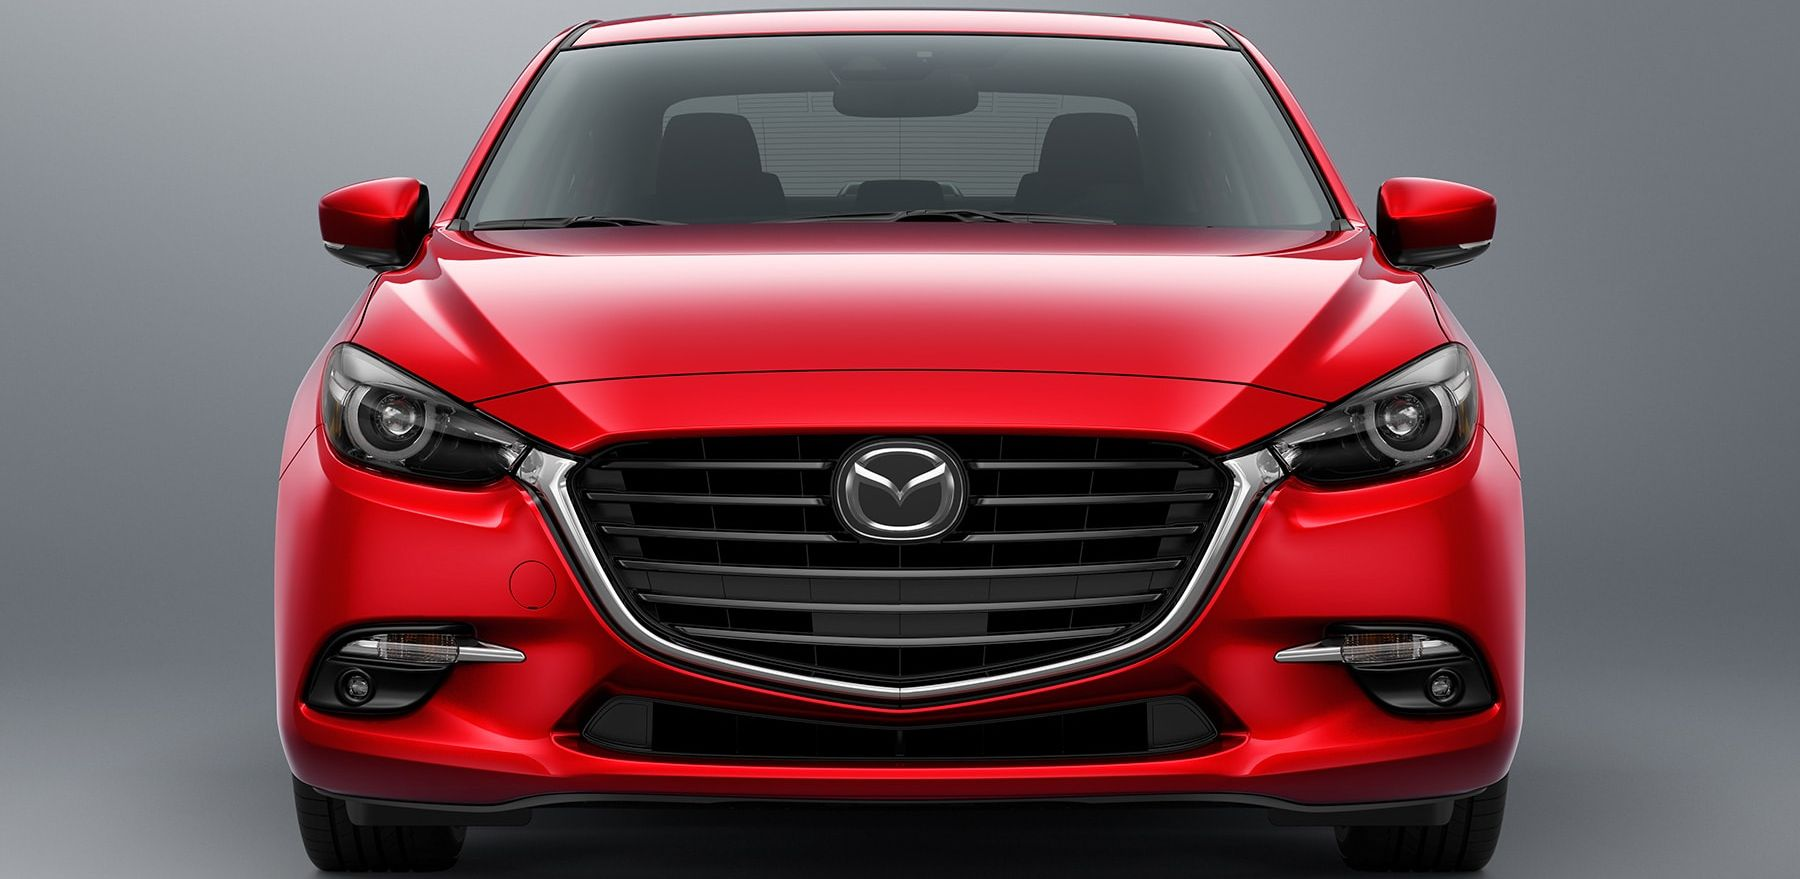 2018 Mazda3 for Sale near Fairfield, CA